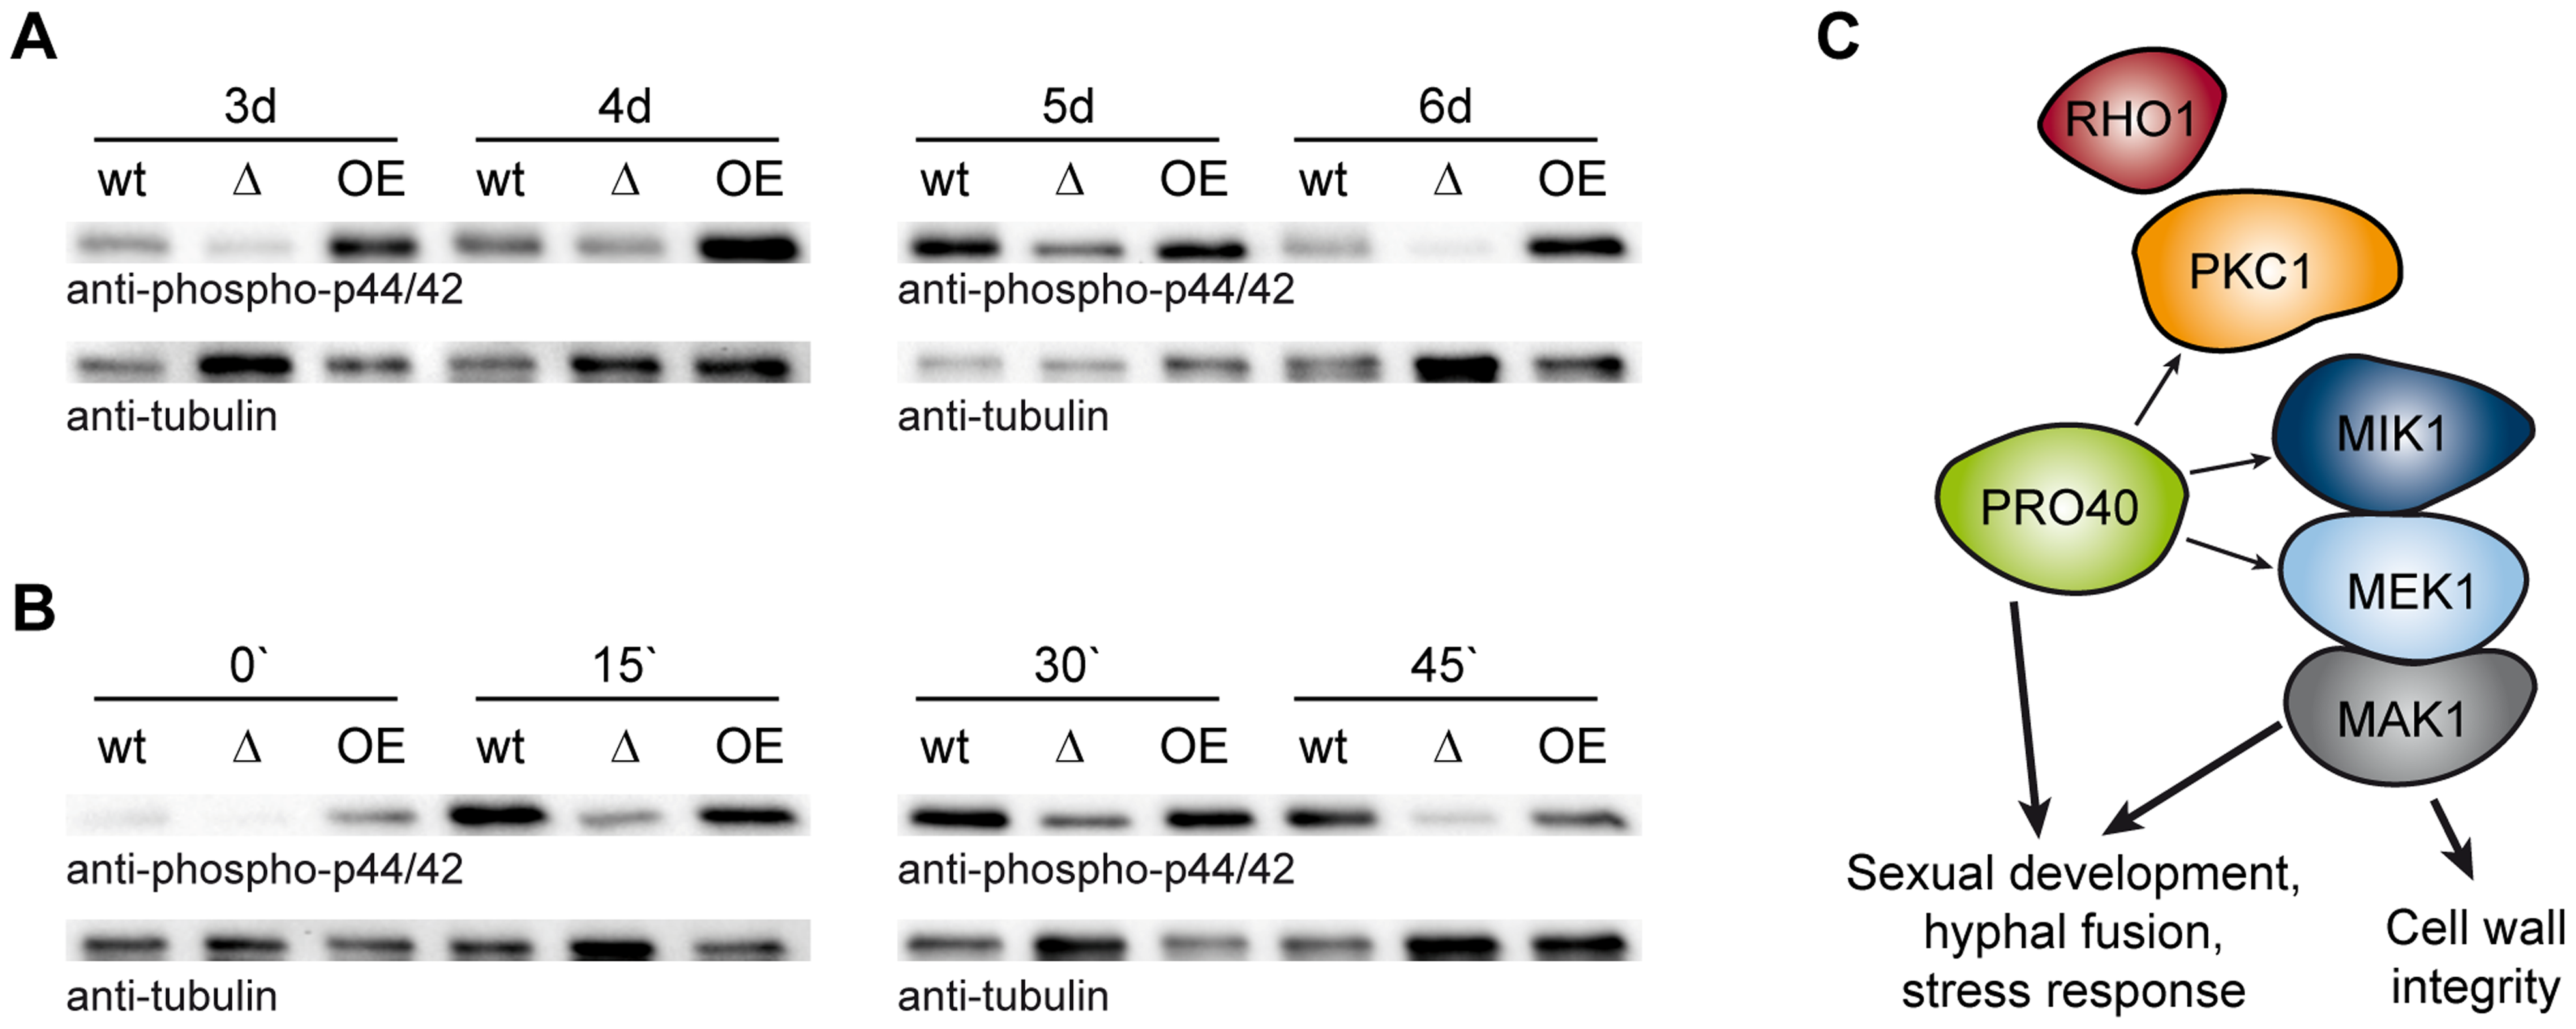 PRO40 is required for correct signaling via the CWI pathway.